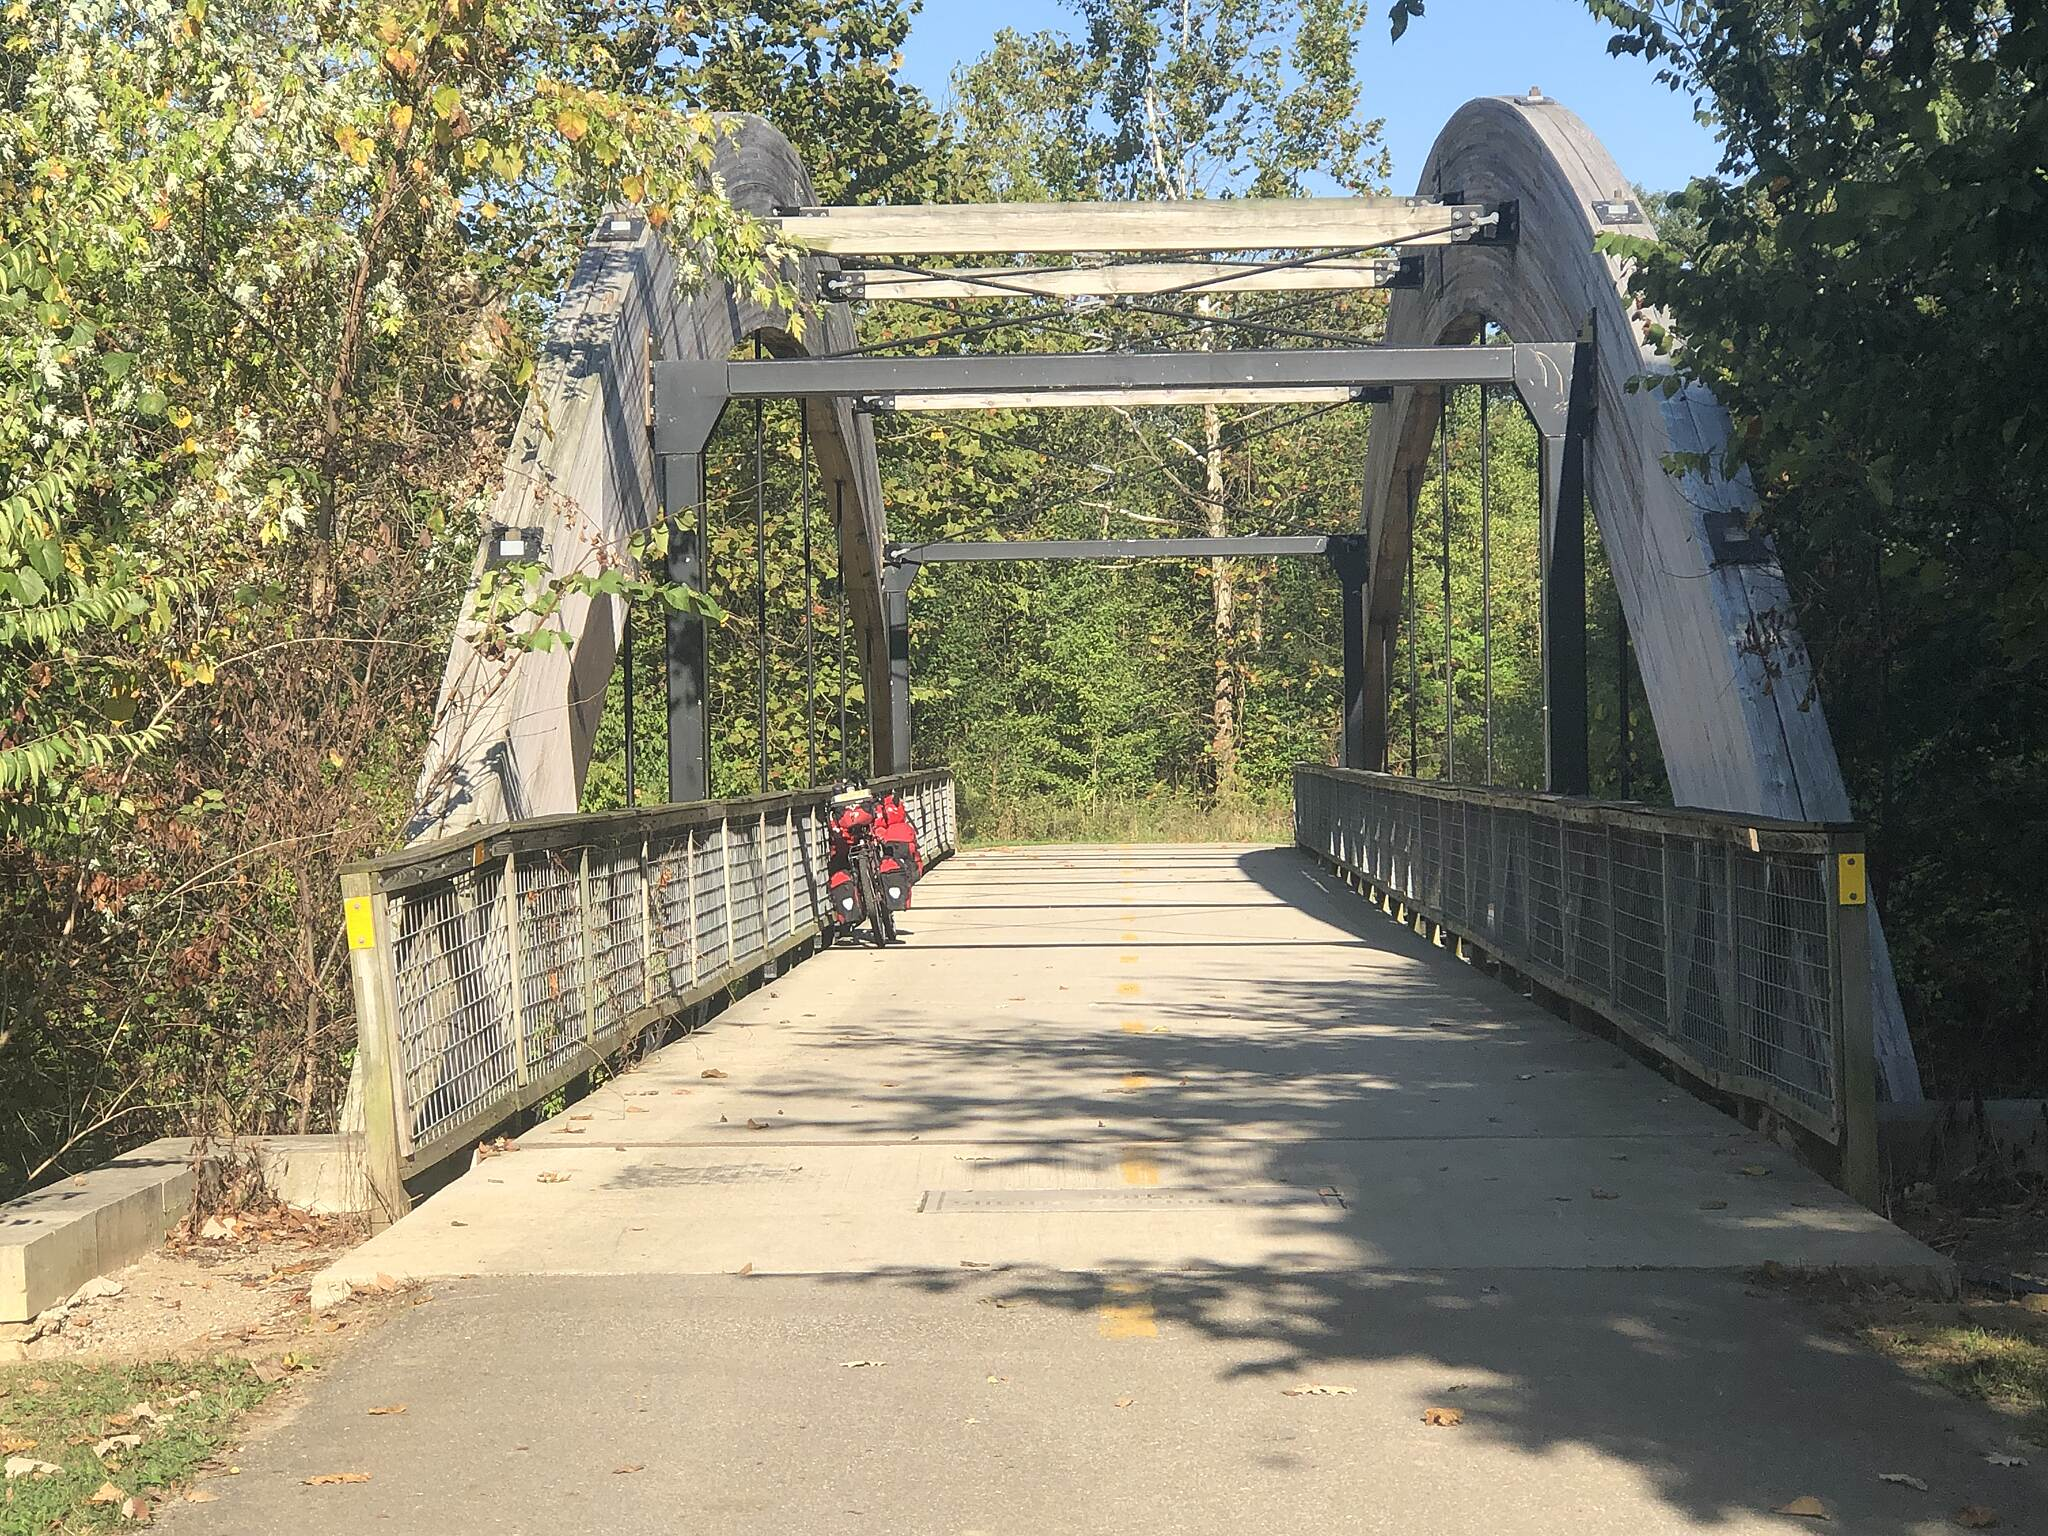 Alum Creek Greenway Trail Bridges That Can Handle the Load This is an example of the many bridges that cross over Alum Creek on this greenway trail.  Each is more than adequate in being able to handle the weight of a few bikes.  November 2019